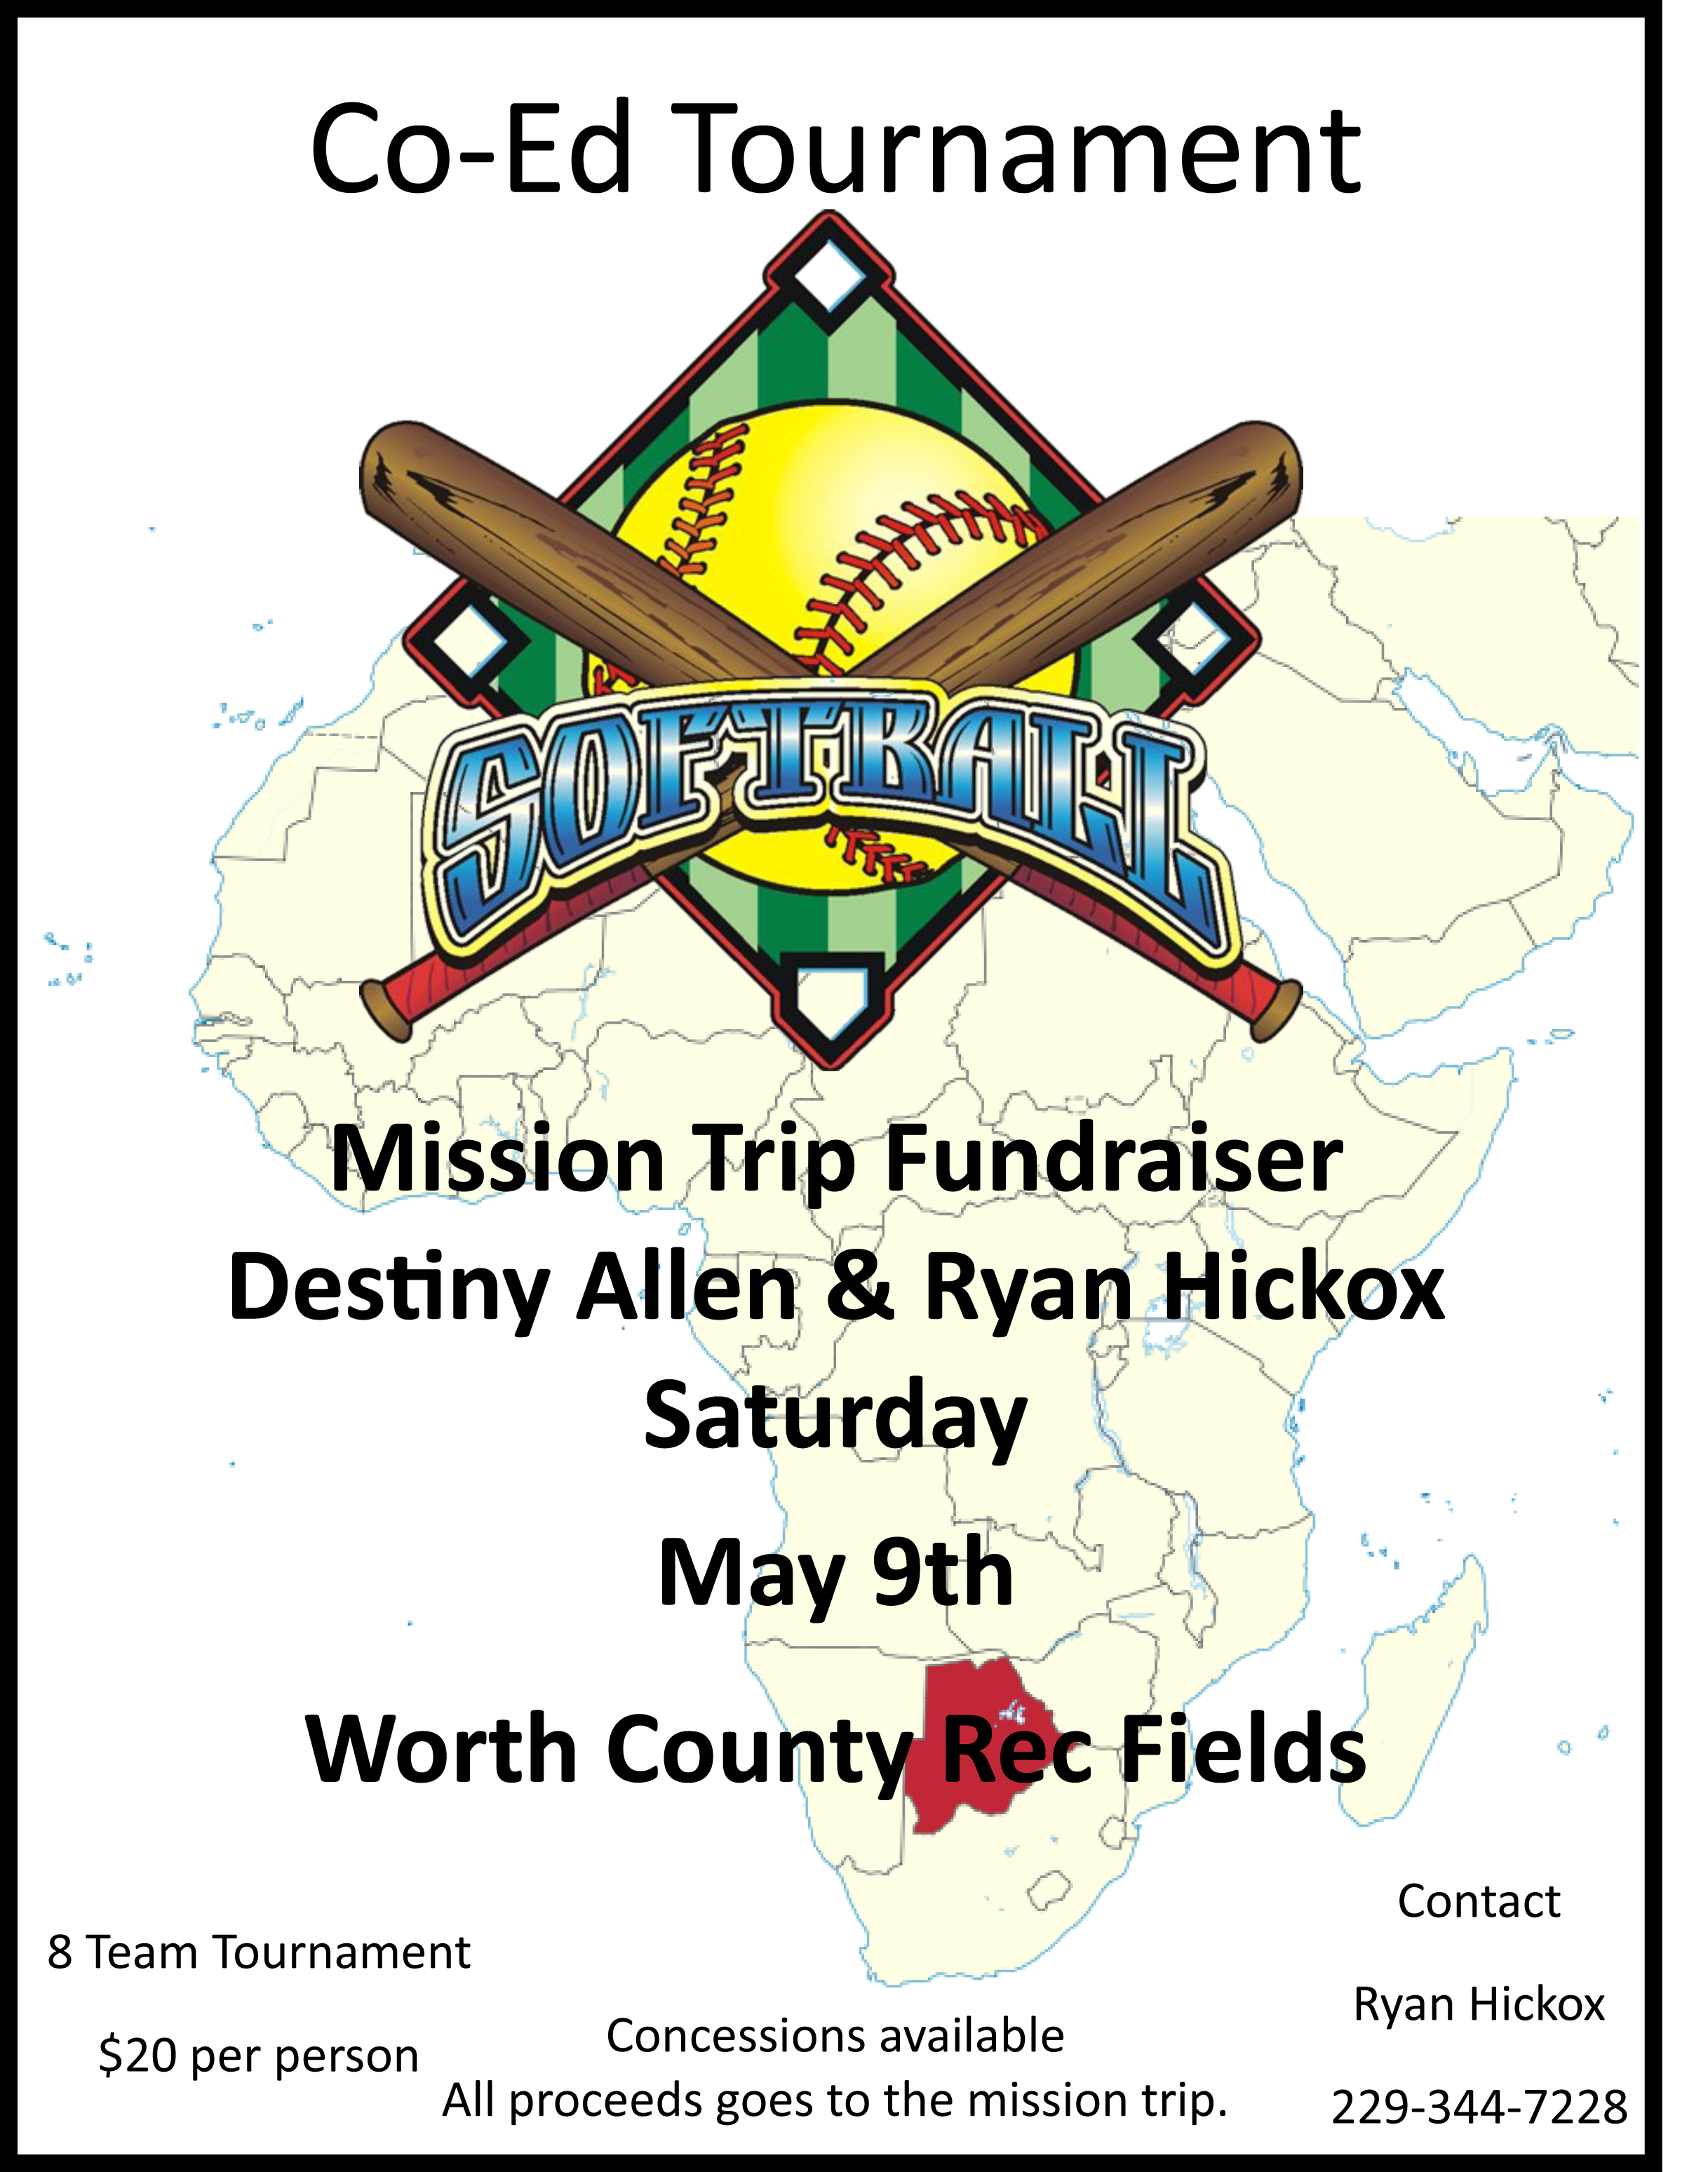 Mission Trip Fundraiser The Sylvester Local